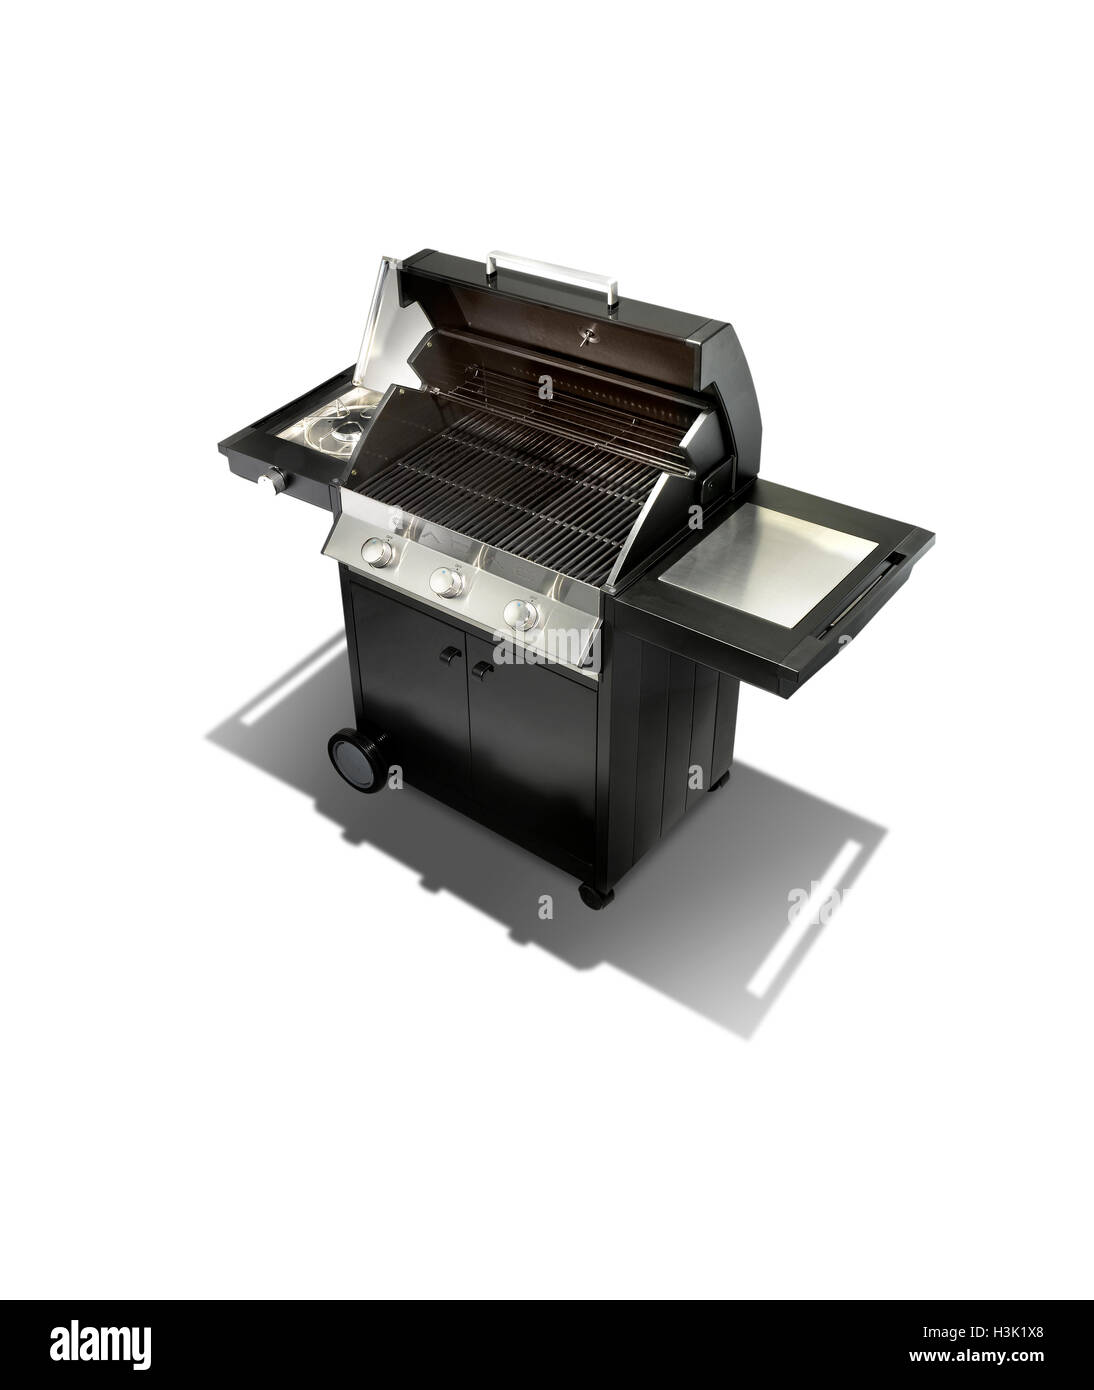 A simple studio shot of a new gas barbecue - Stock Image